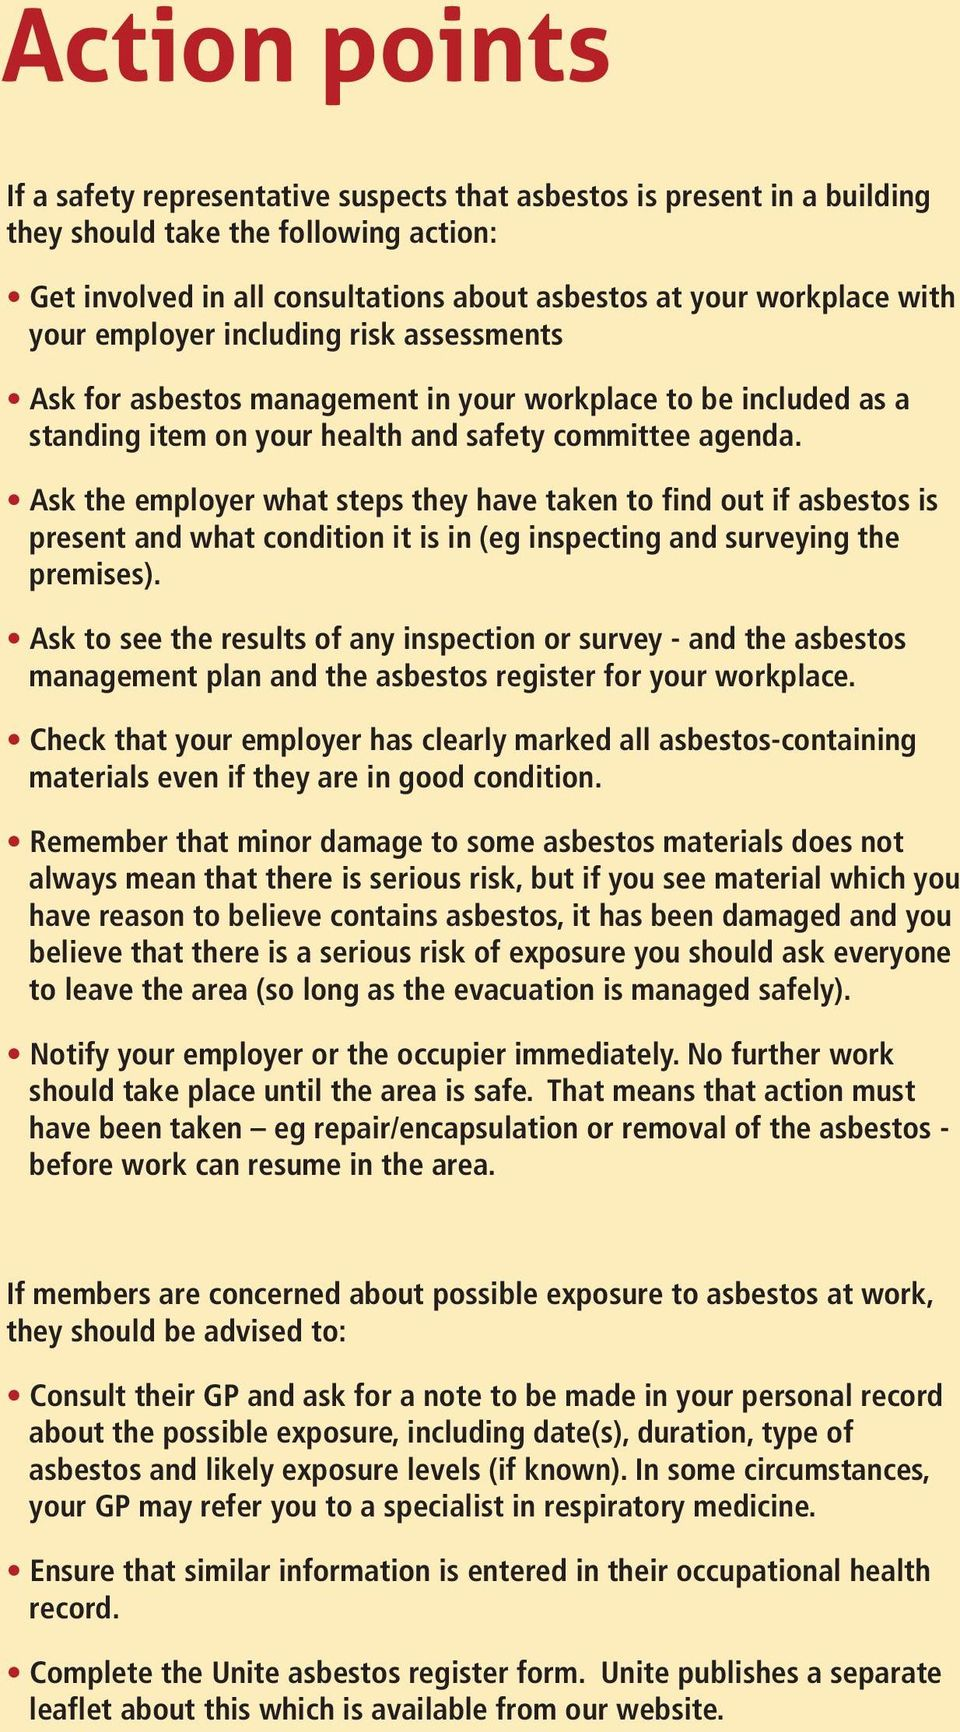 Ask the employer what steps they have taken to find out if asbestos is present and what condition it is in (eg inspecting and surveying the premises).